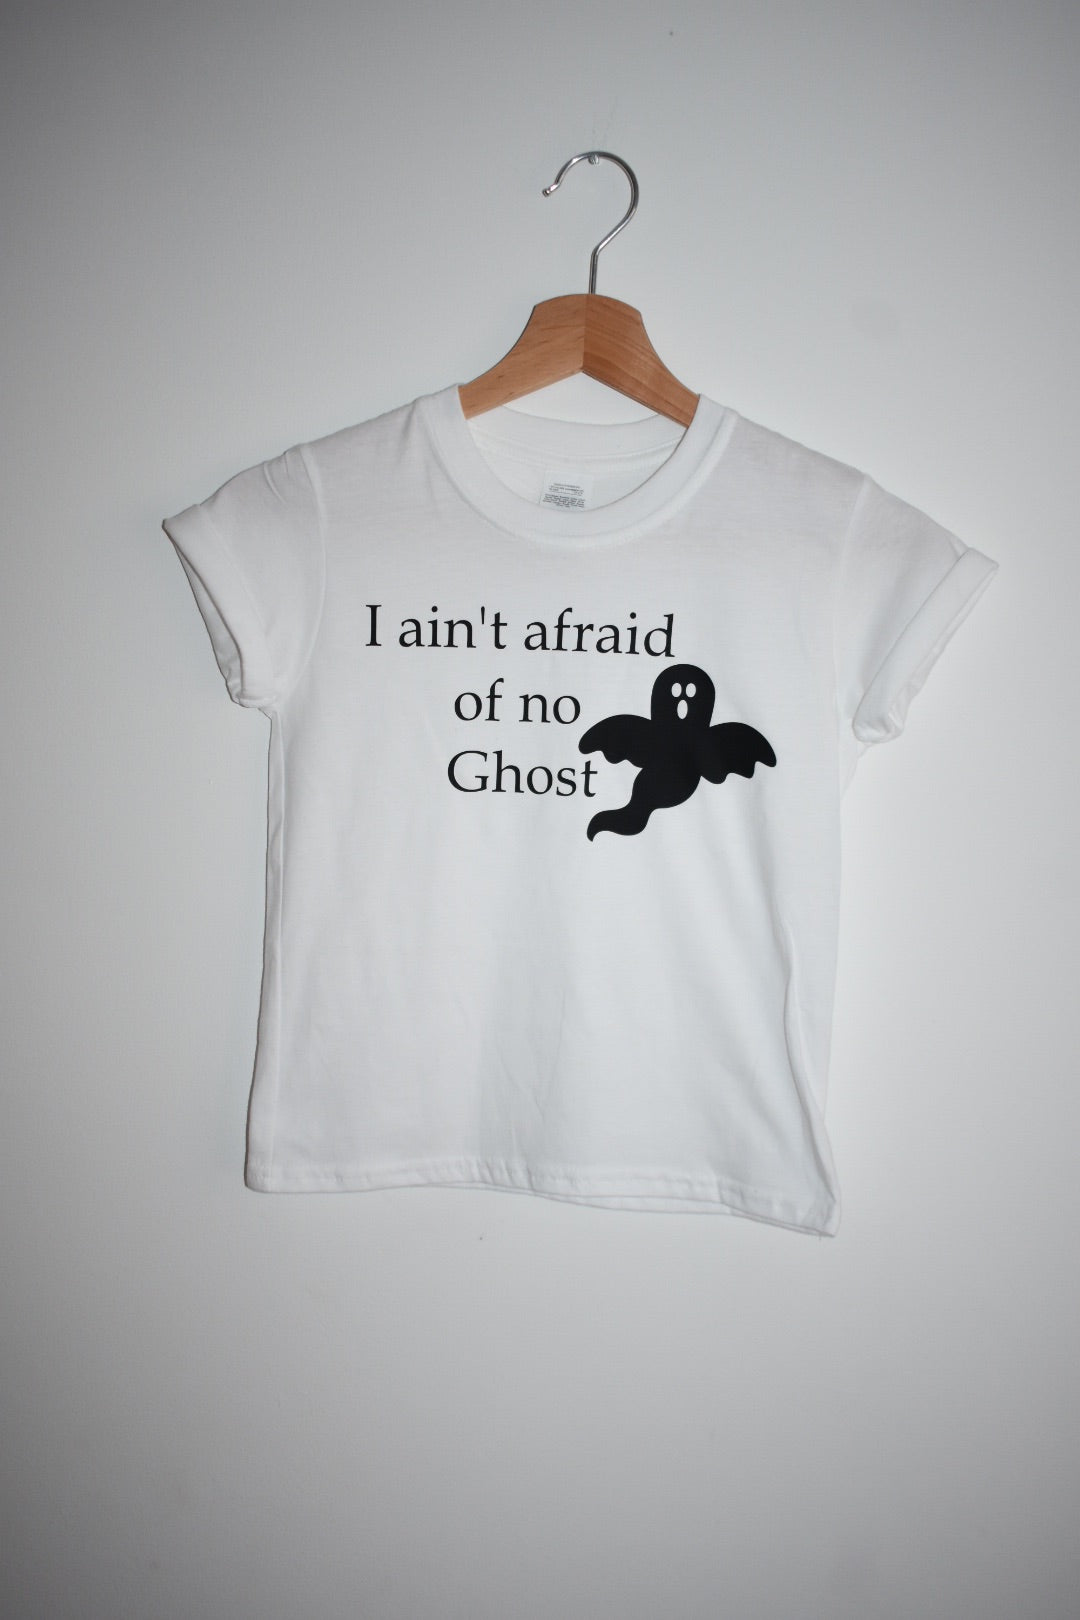 Ain't afraid of no ghost tee